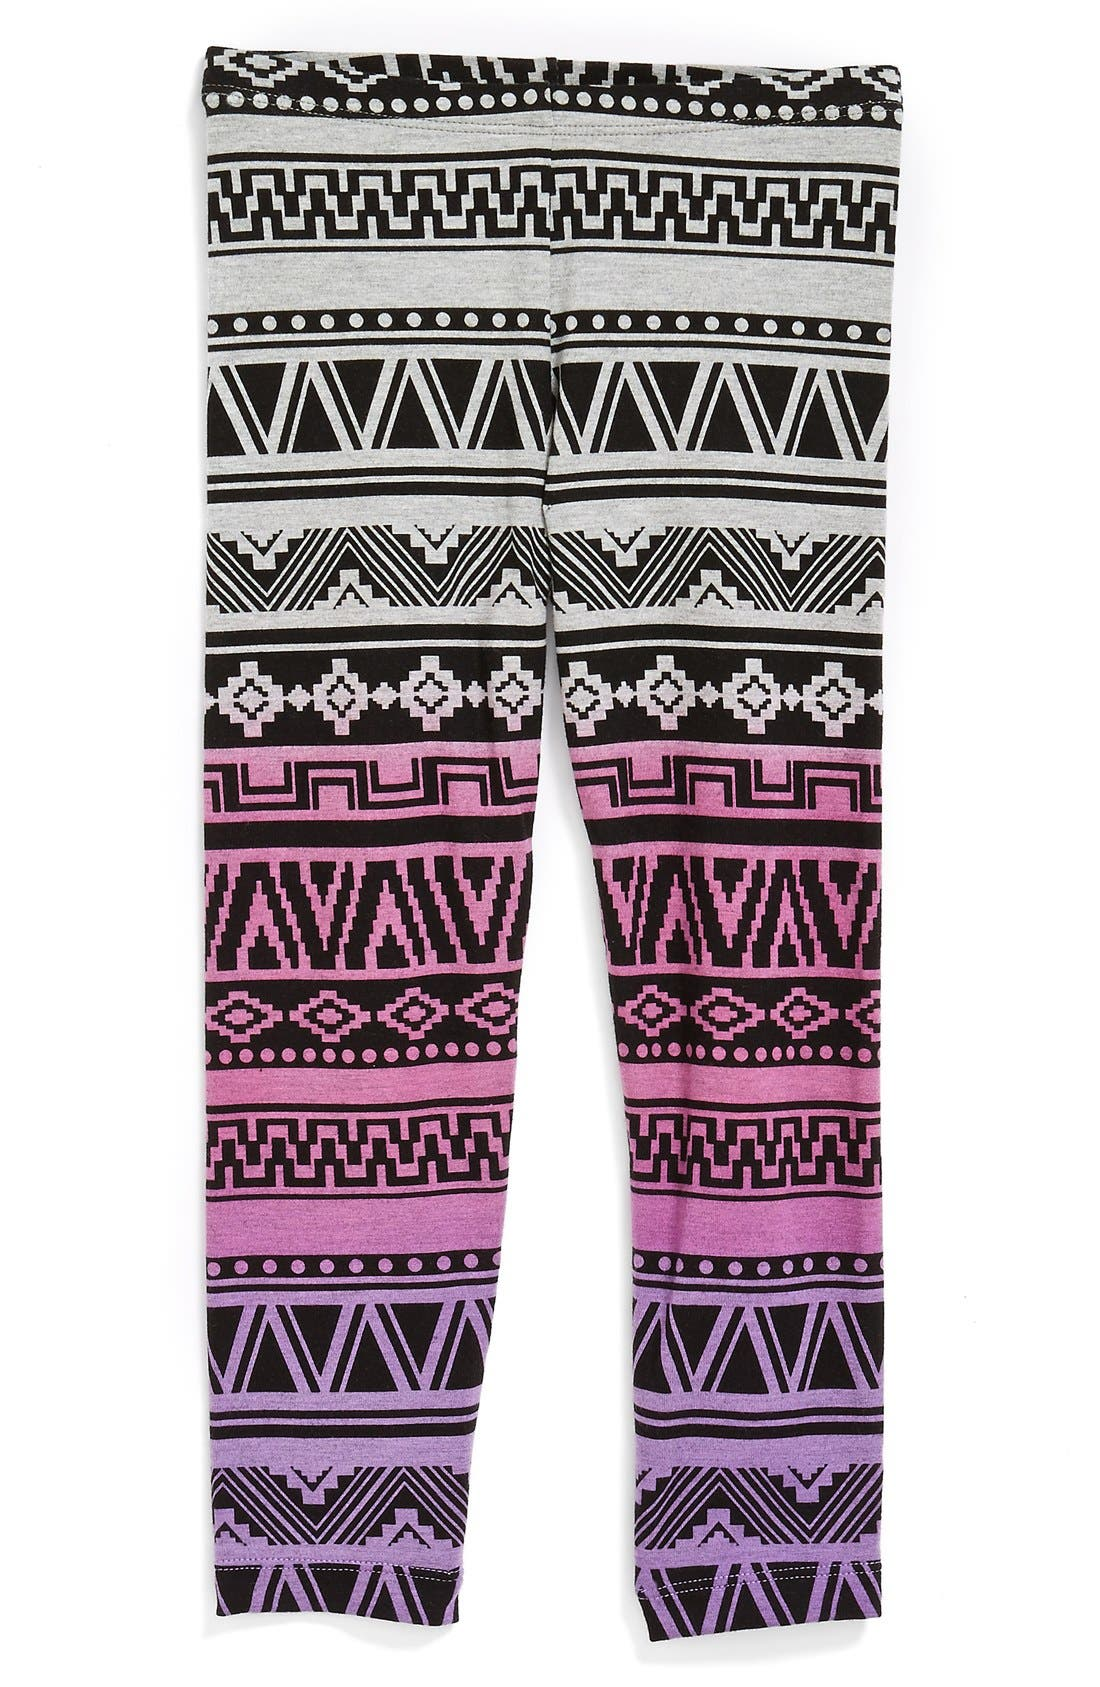 Alternate Image 1 Selected - Flowers by Zoe Geometric Print Leggings (Big Girls) (Online Only)